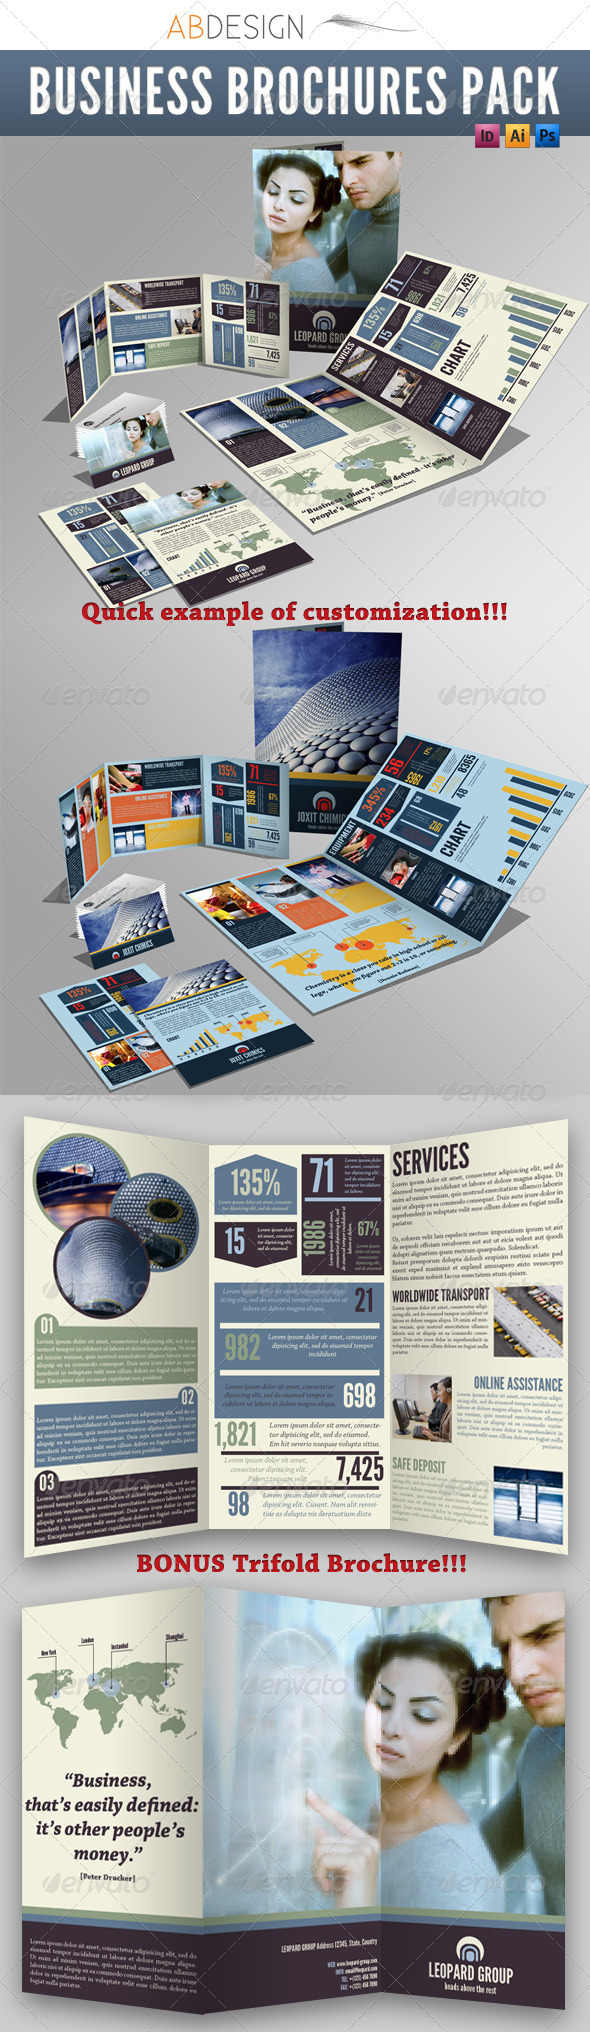 Business Brochures Pack - Corporate Brochures